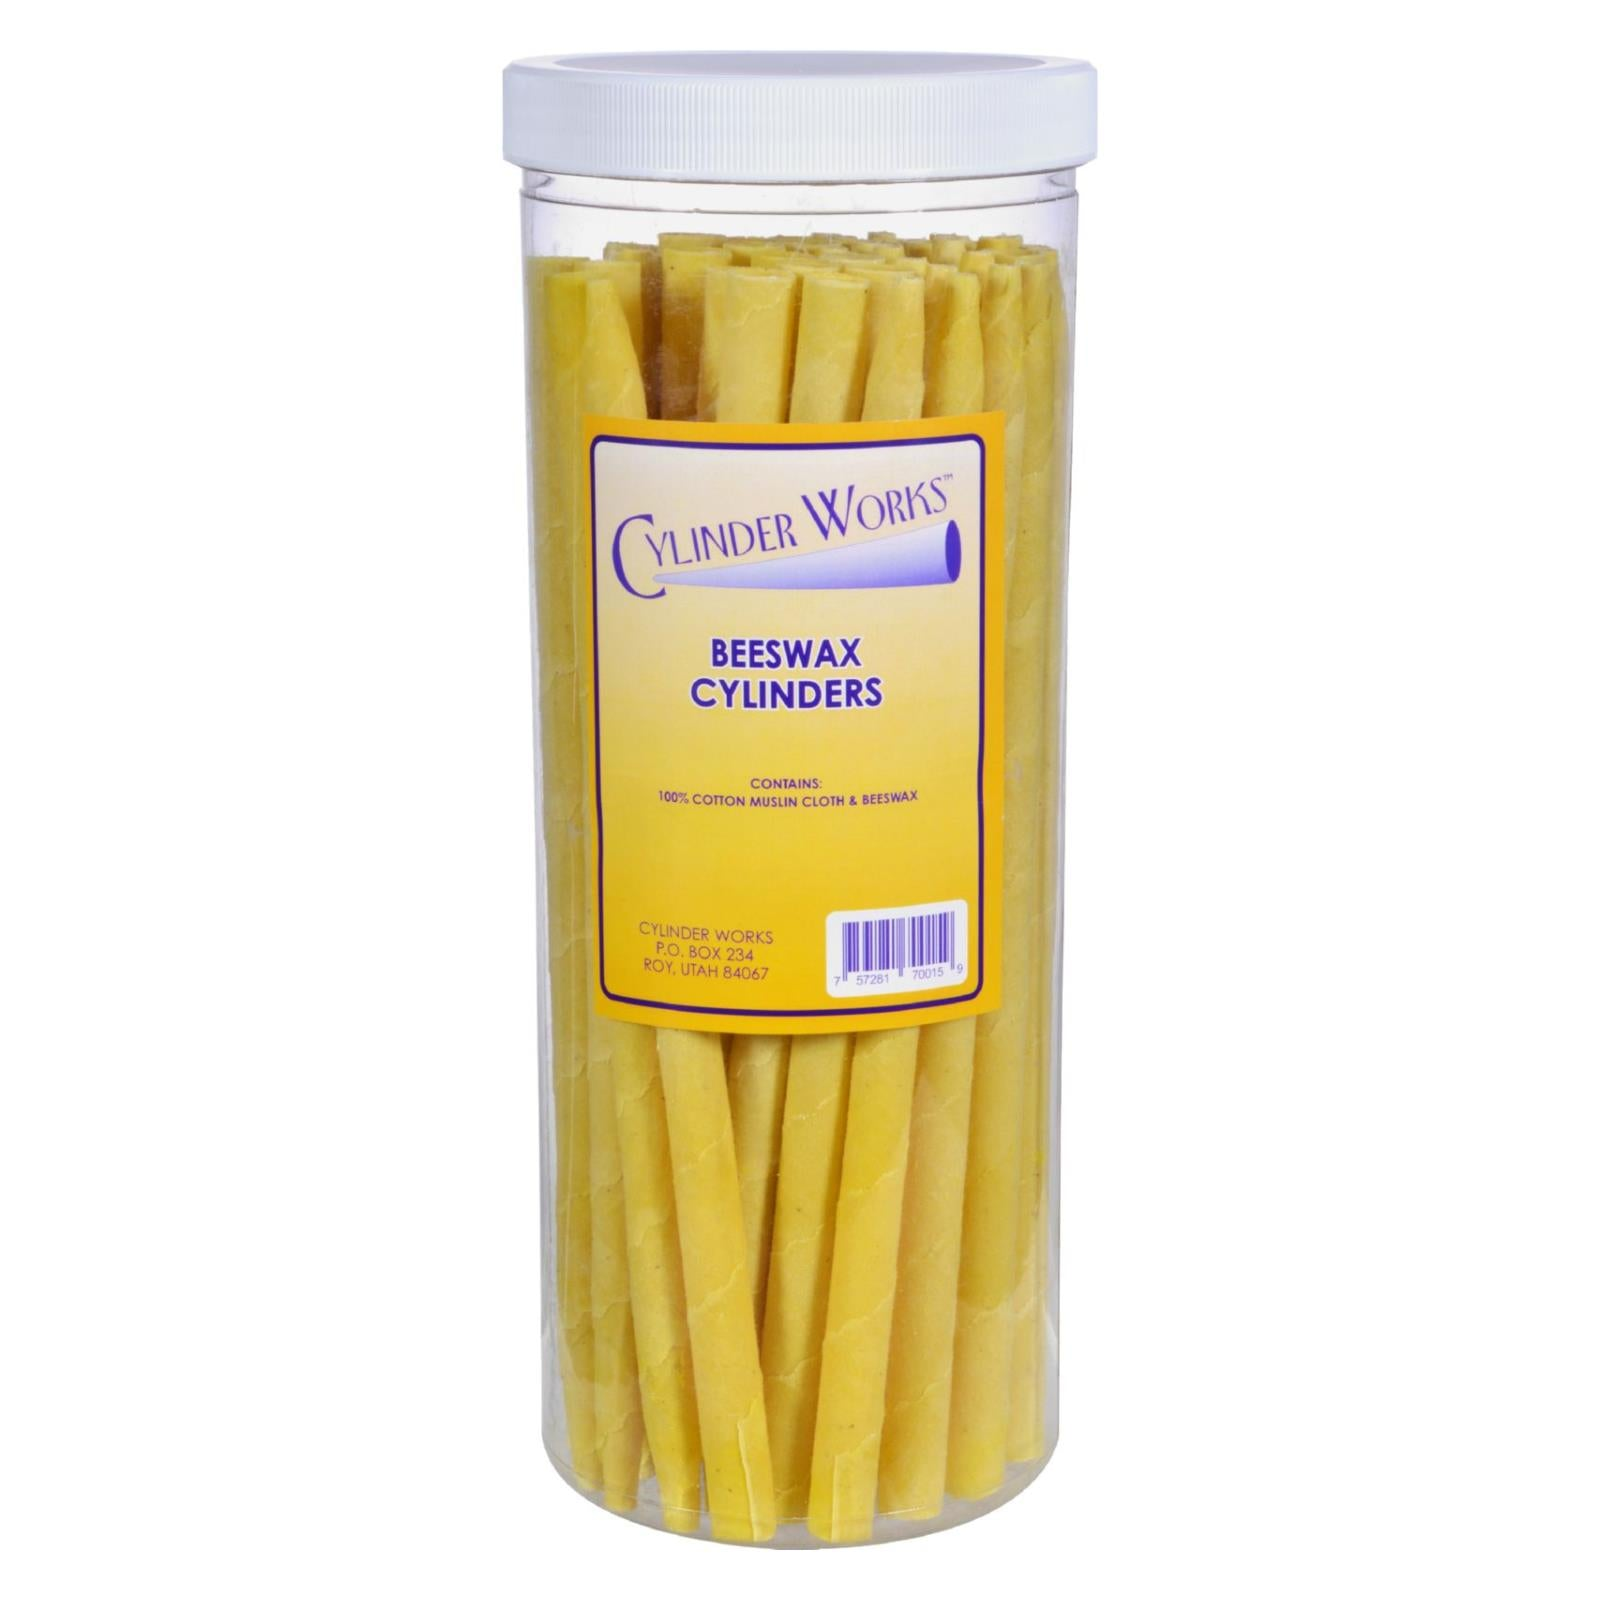 Cylinder Works - Herbal Beeswax Ear Candles - 50 Pack